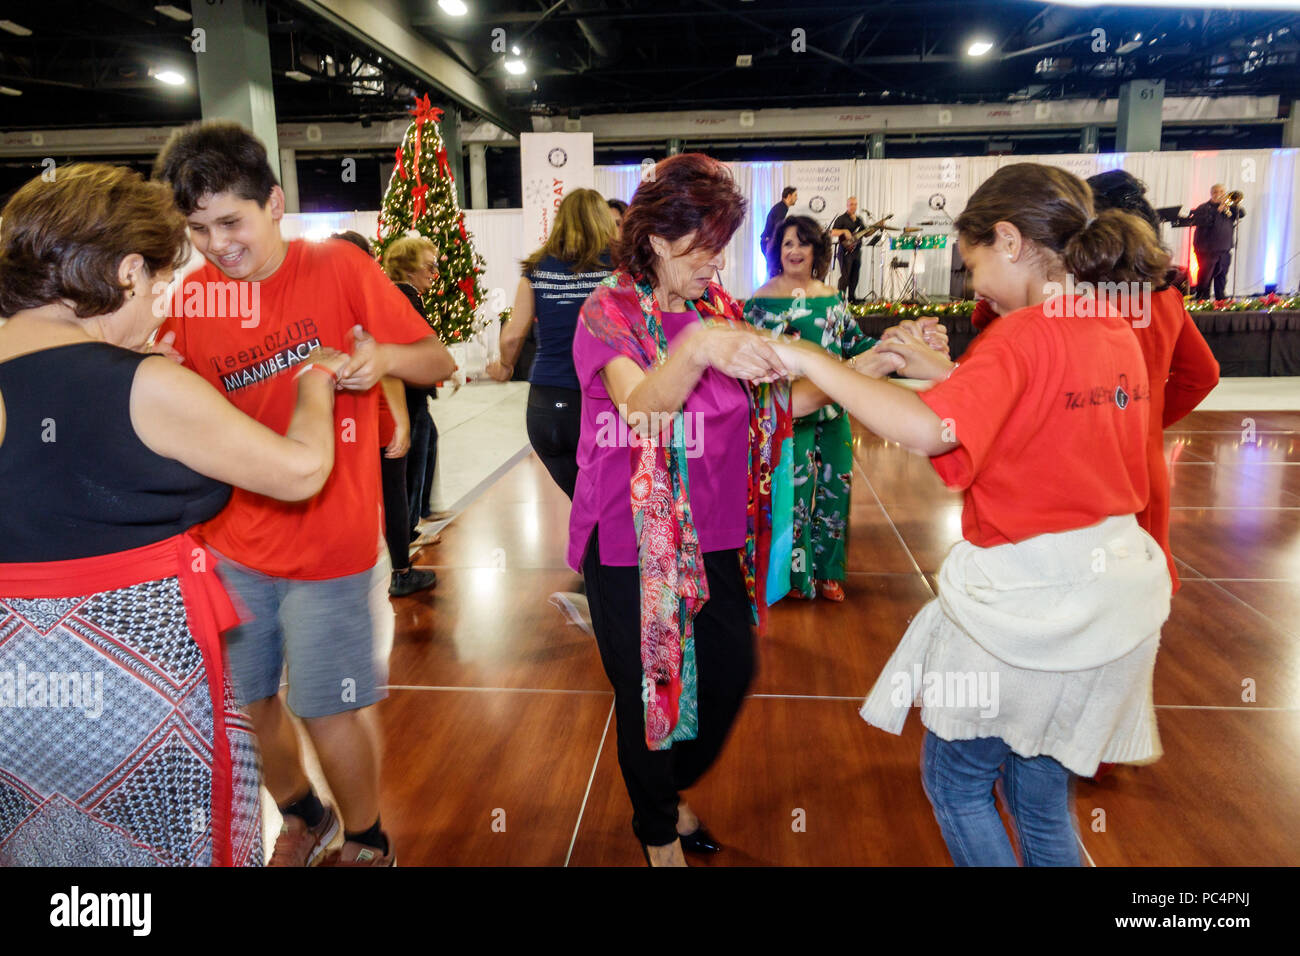 Boy And Girl Dancing Party Stockfotos & Boy And Girl Dancing Party ...